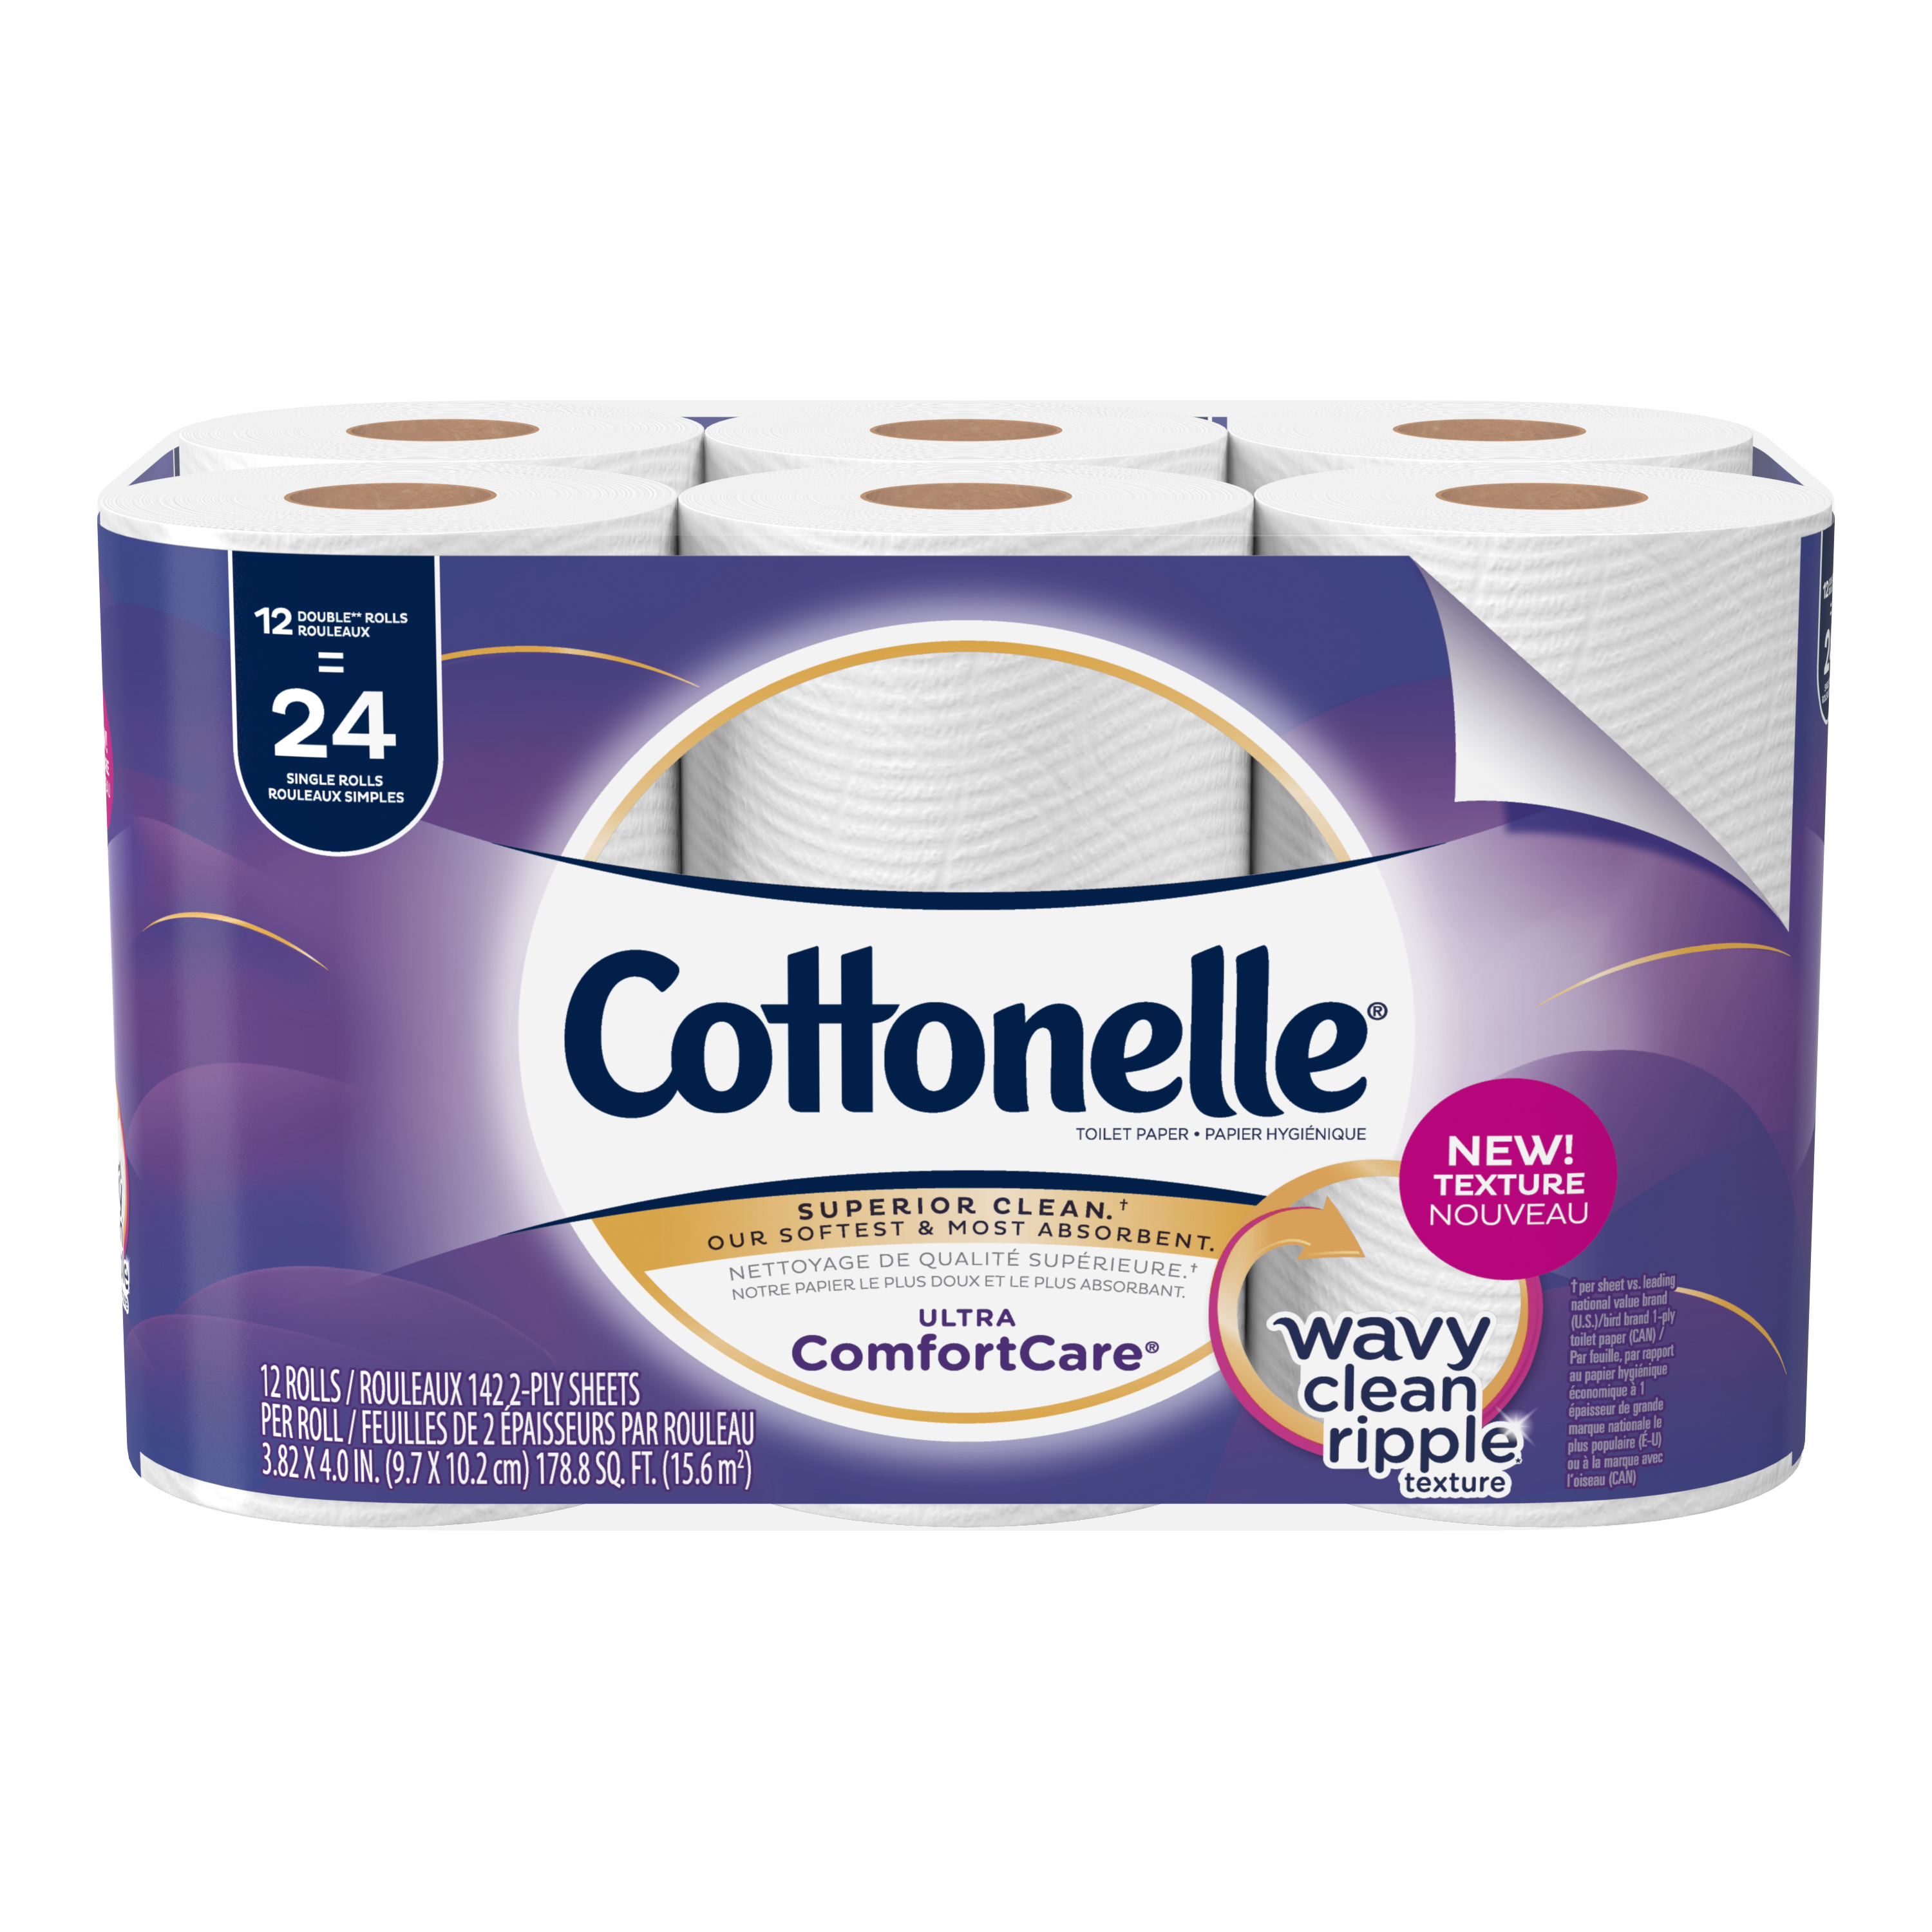 Cottonelle Ultra Comfort Care, 12 Double Rolls, Toilet Paper